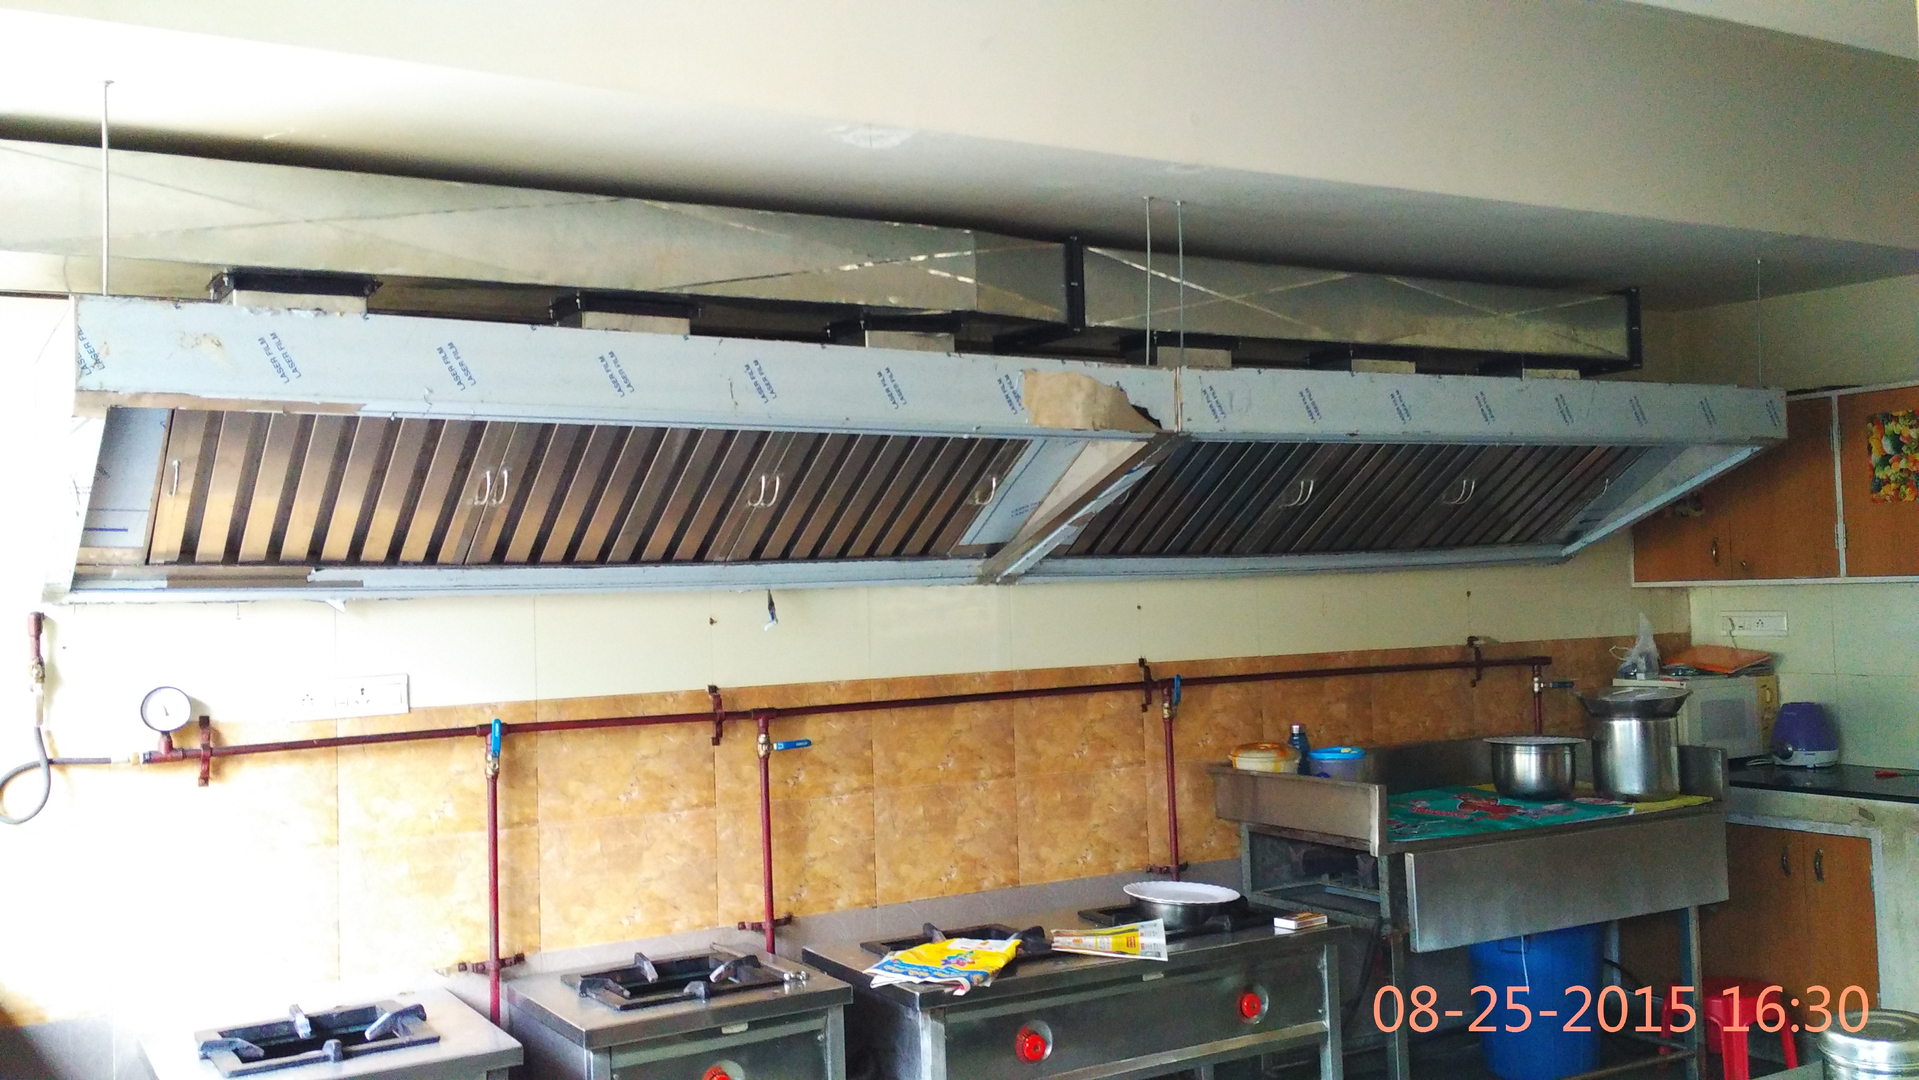 KITCHEN EXHAUST SYSTEM, KITCHEN HOOD, DUCTING, HOOD, MANUFACTURER